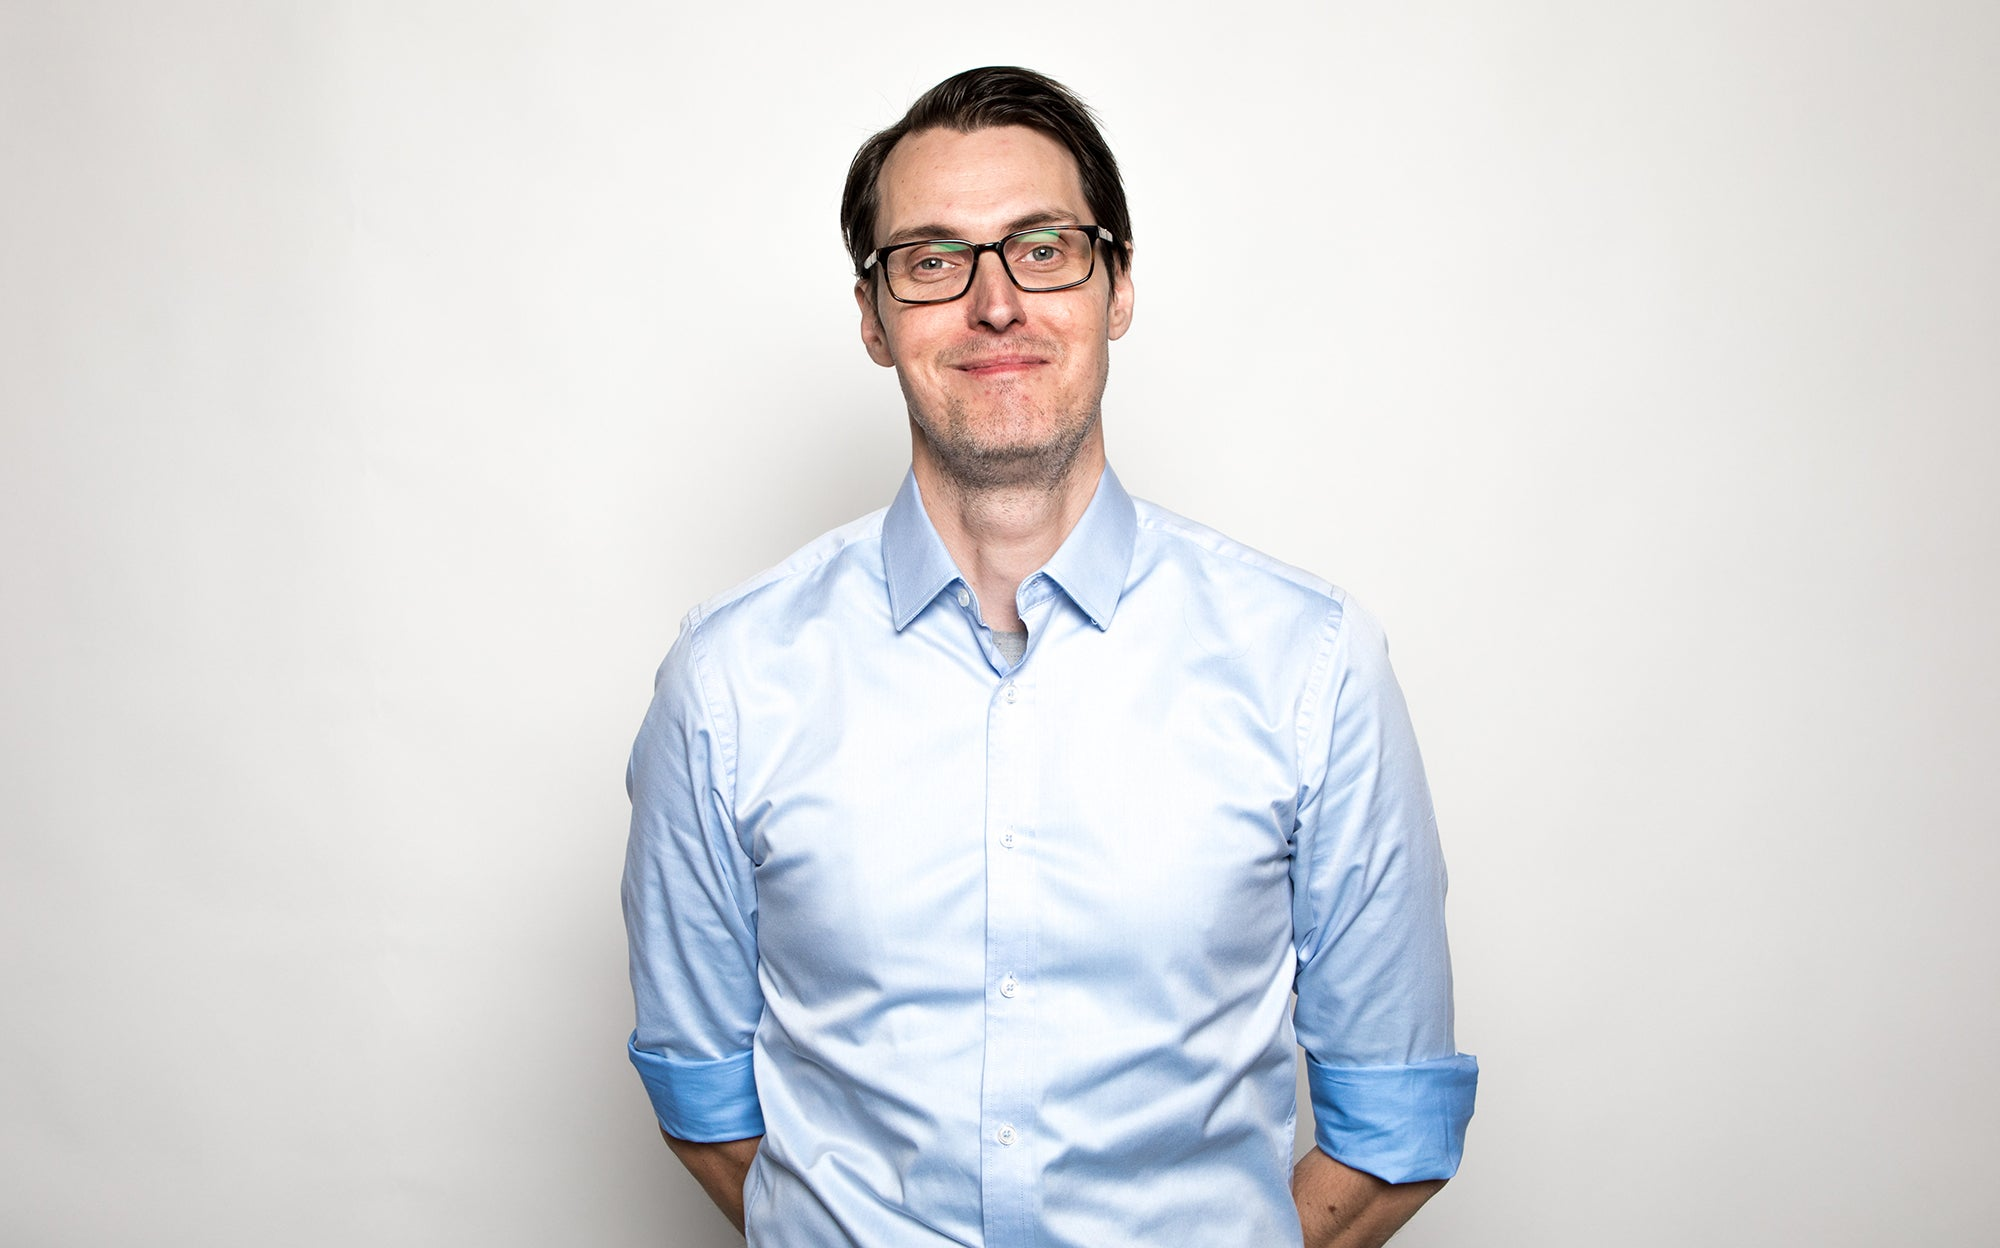 Erik Hallander promoted to Chief Executive Officer of Isobar ANZ